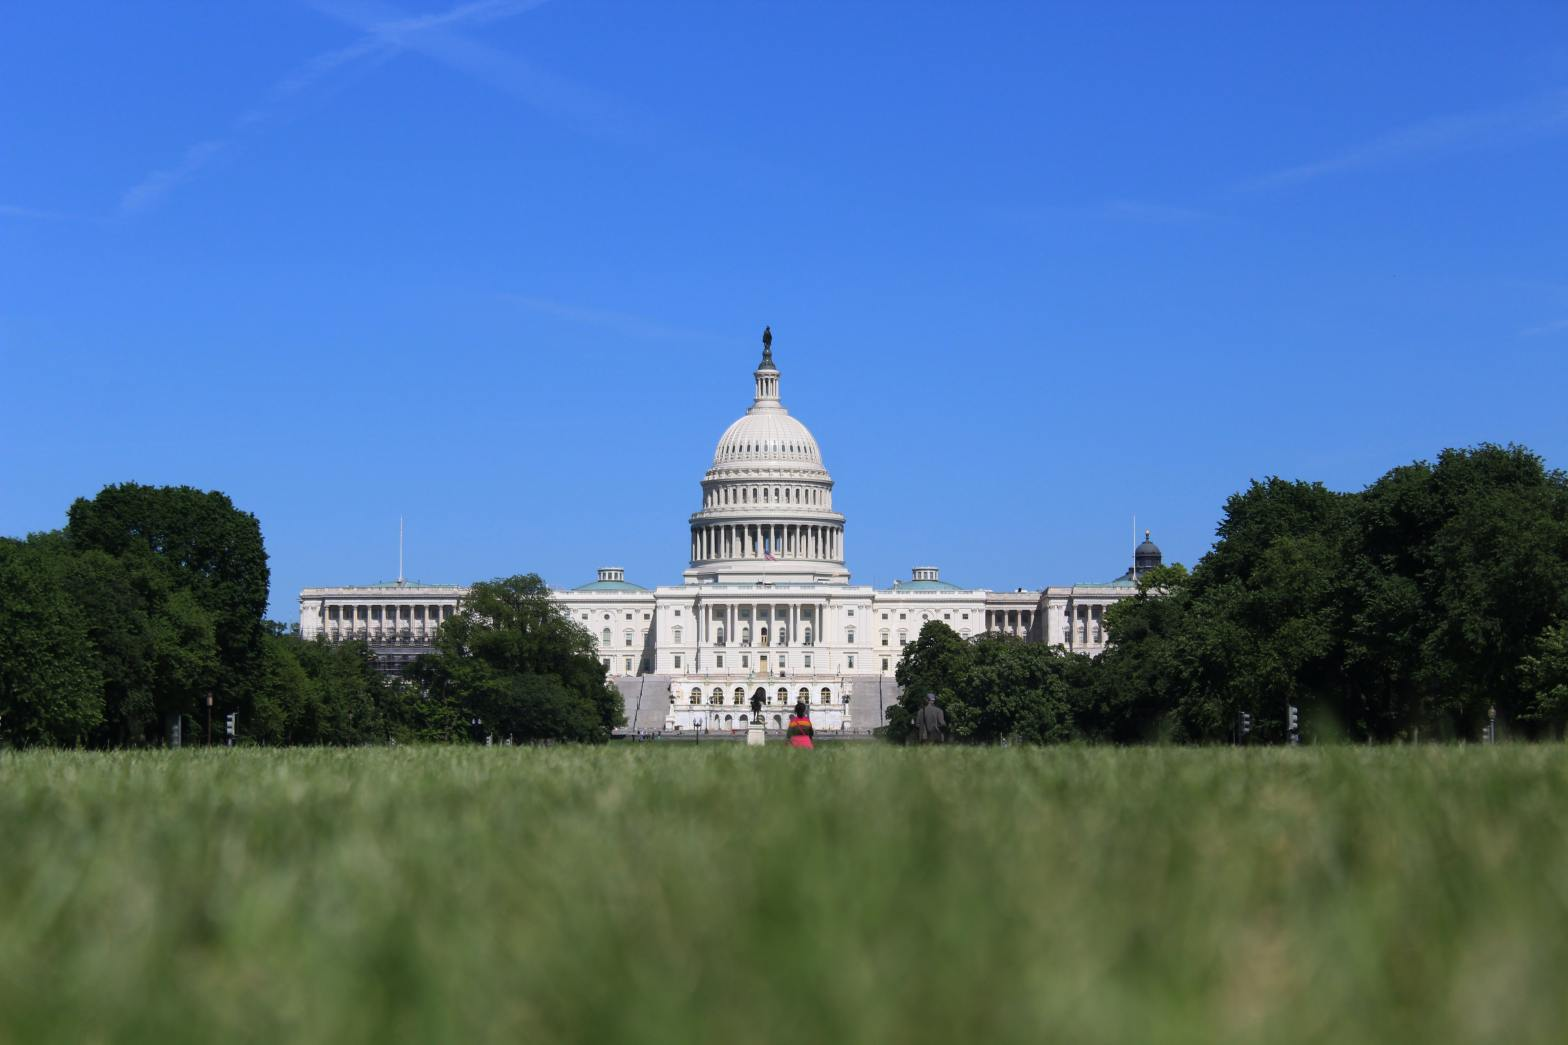 photo of United States capital building and lawn